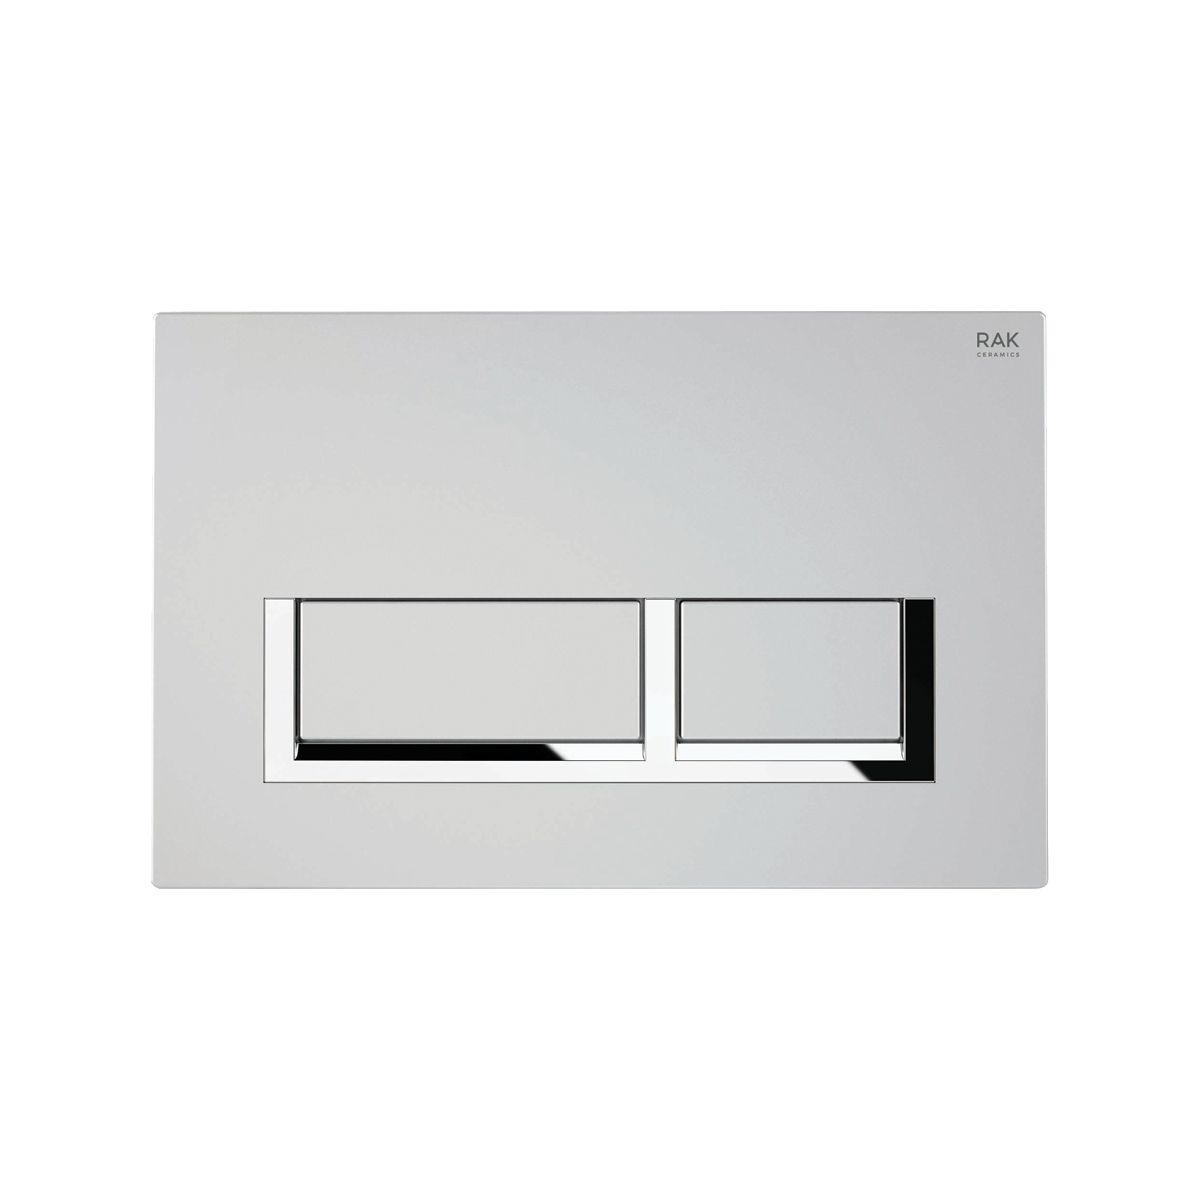 RAK Ecofix Matt Chrome Flush Plate with Surrounded Rectangular Push Buttons